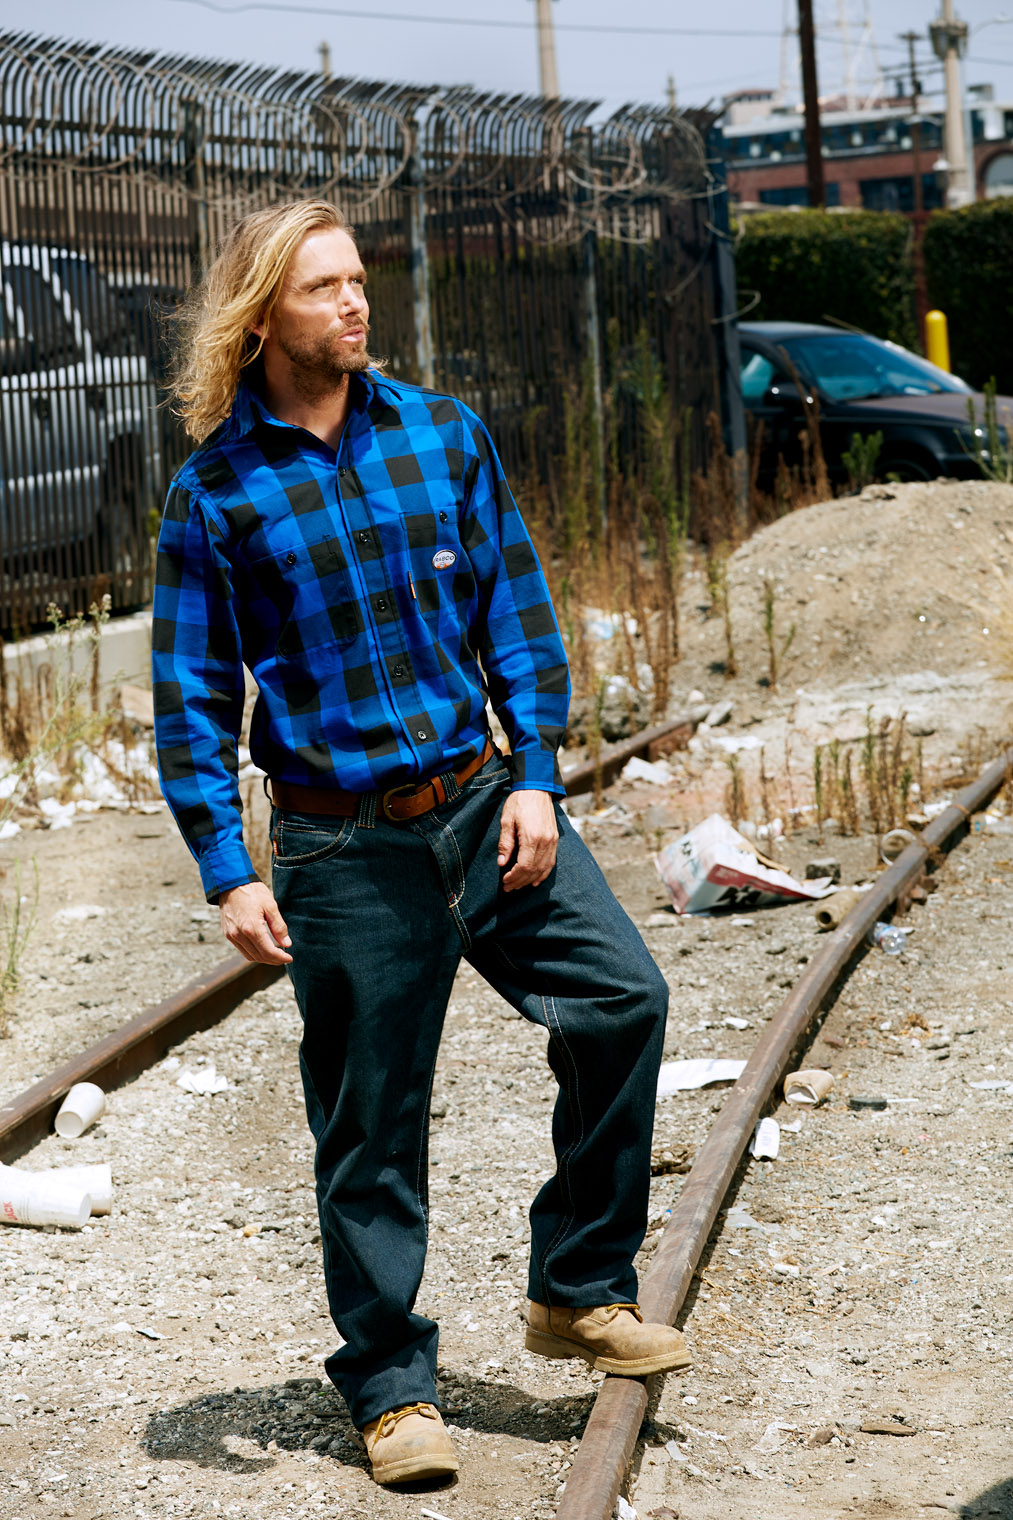 tough hard worker in blue plaid shirt ready to do hard work story